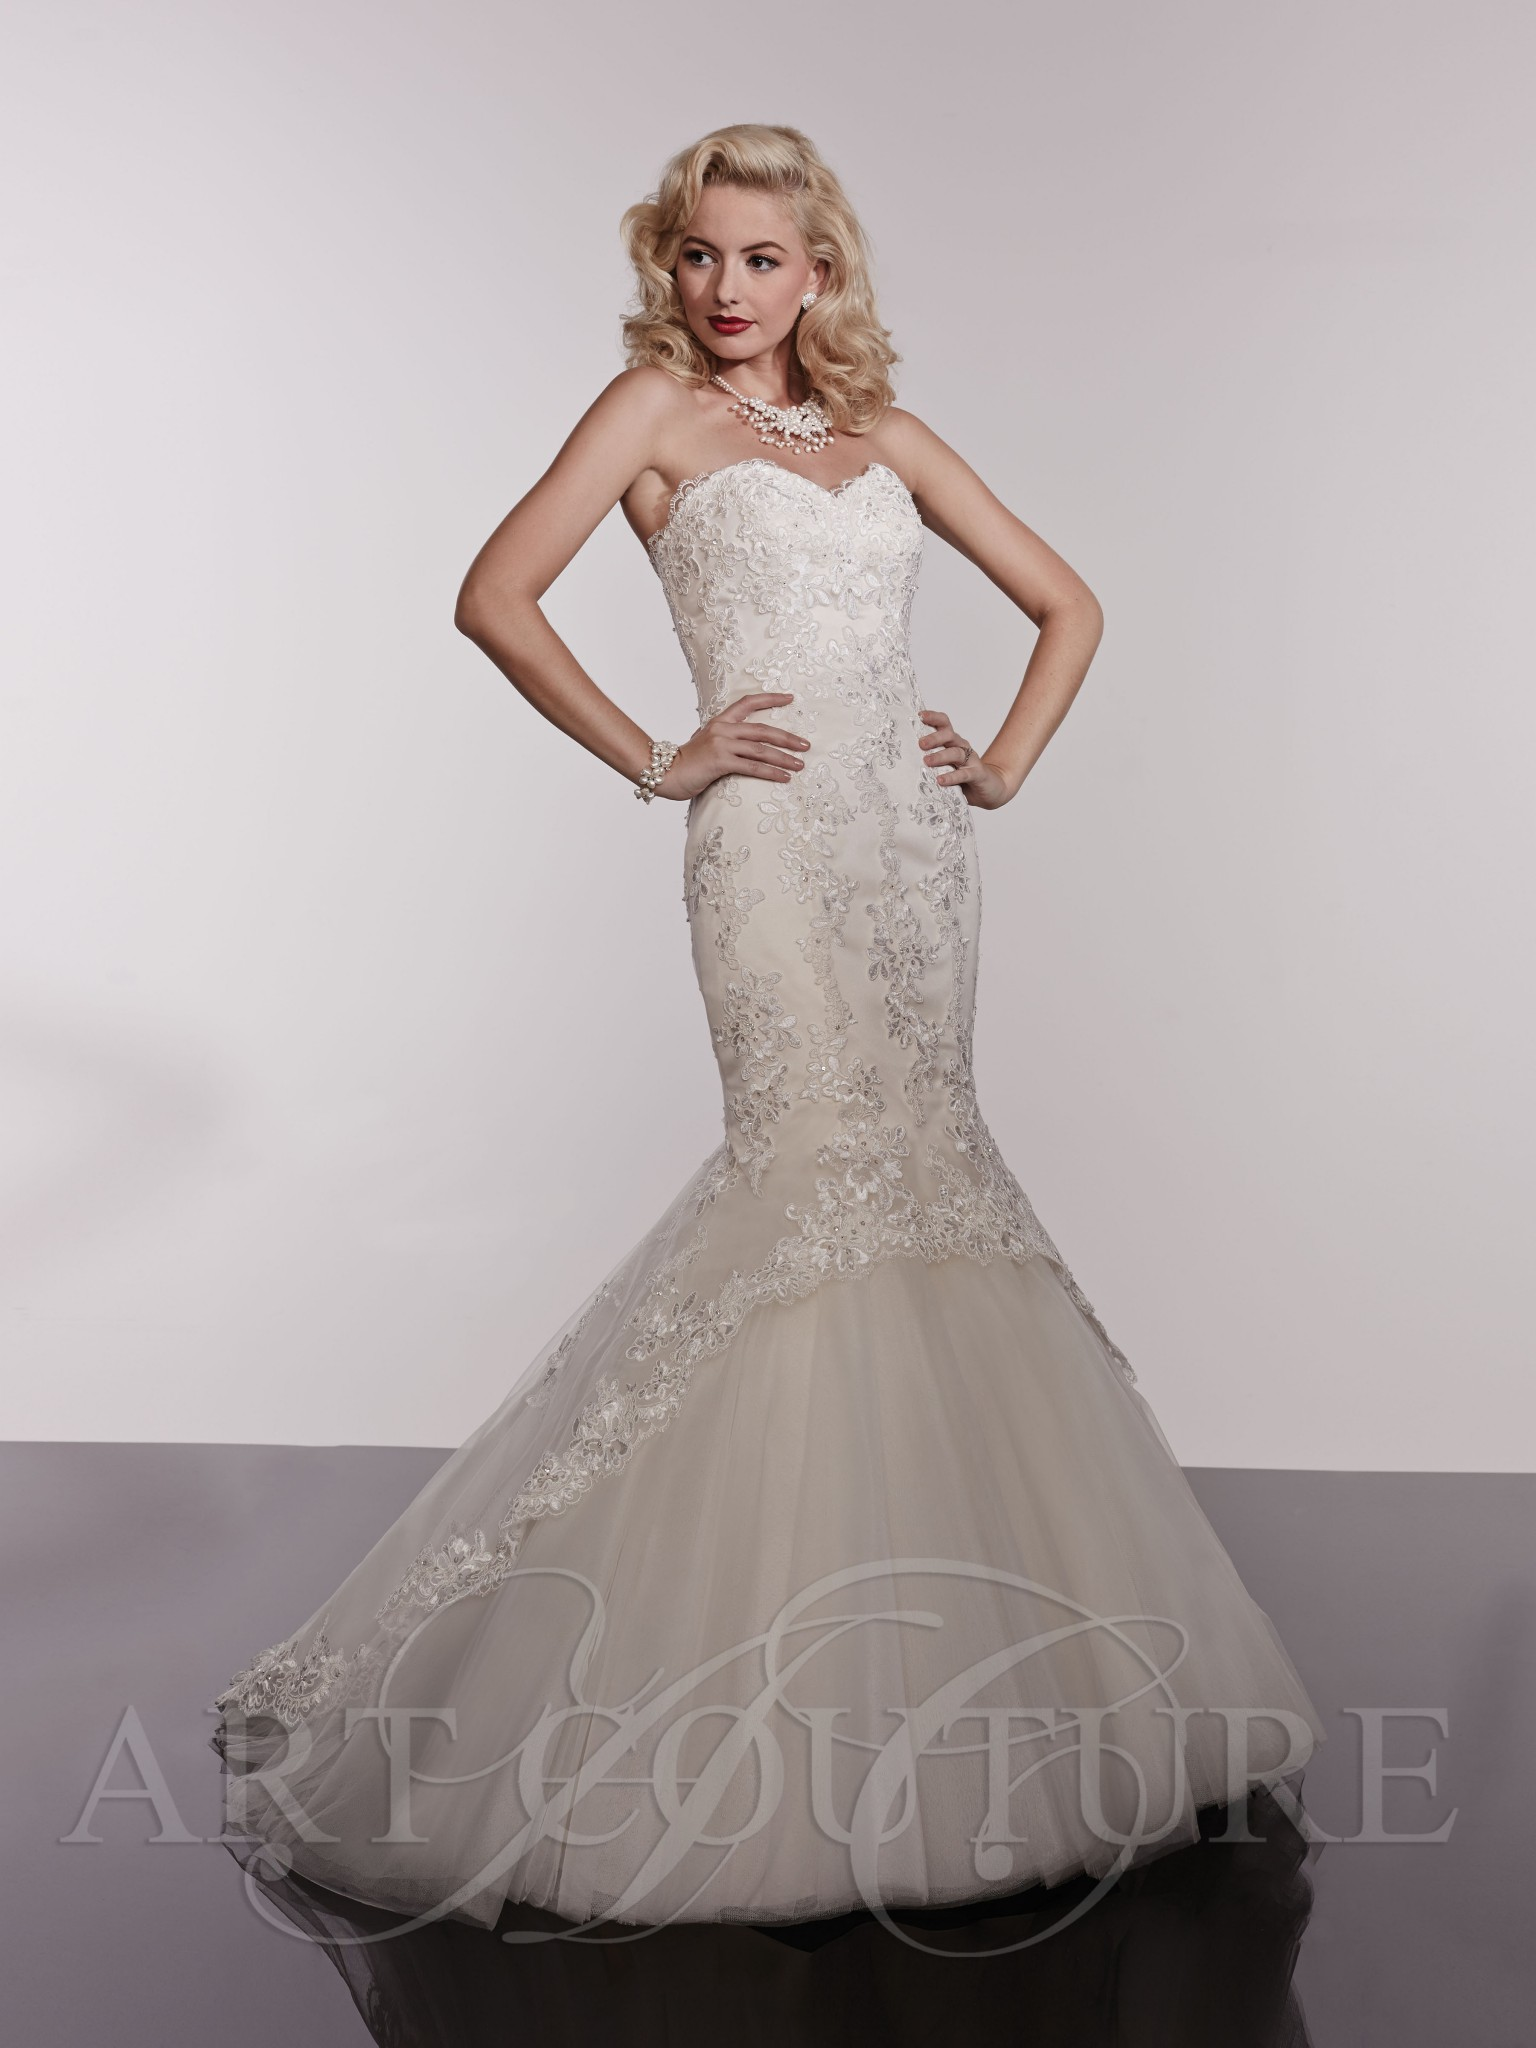 Eternity & Art Couture : With Love Bridals